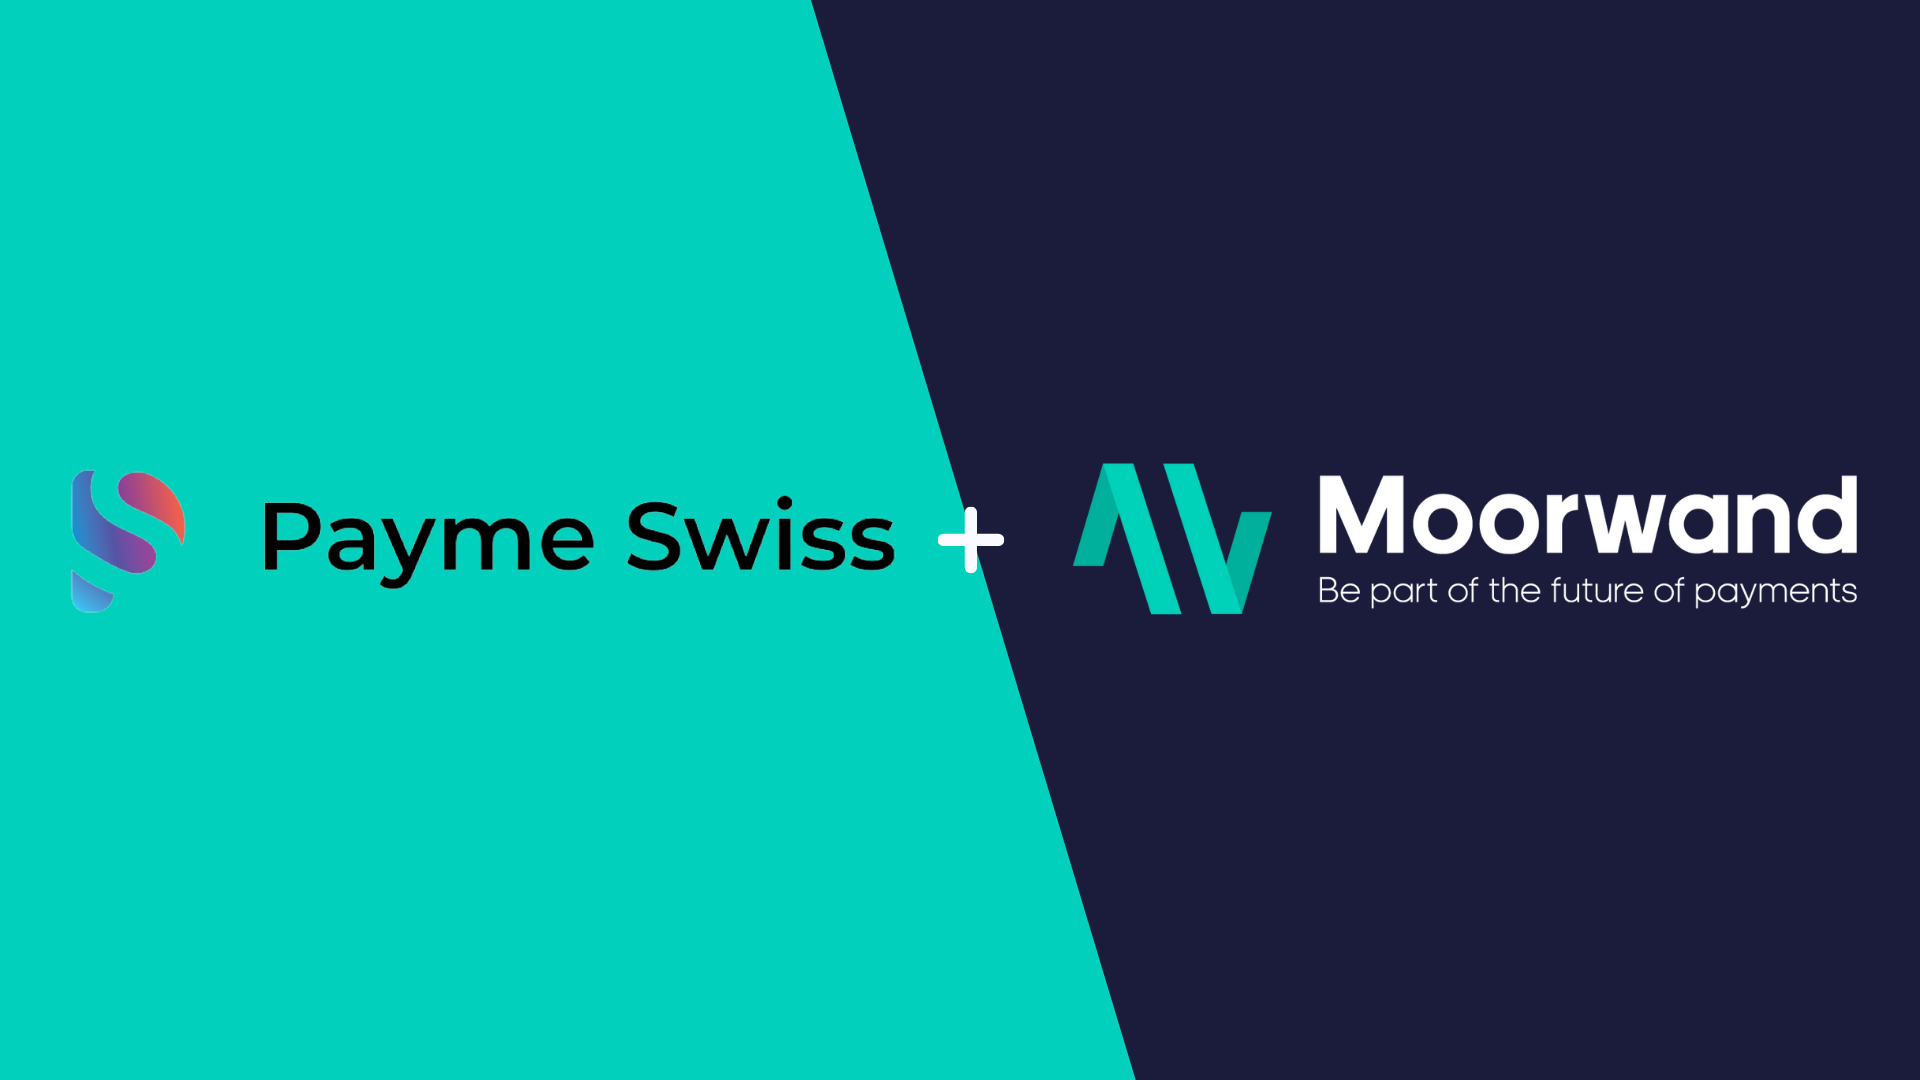 Moorwand-partners-with-Payme-Swiss.png